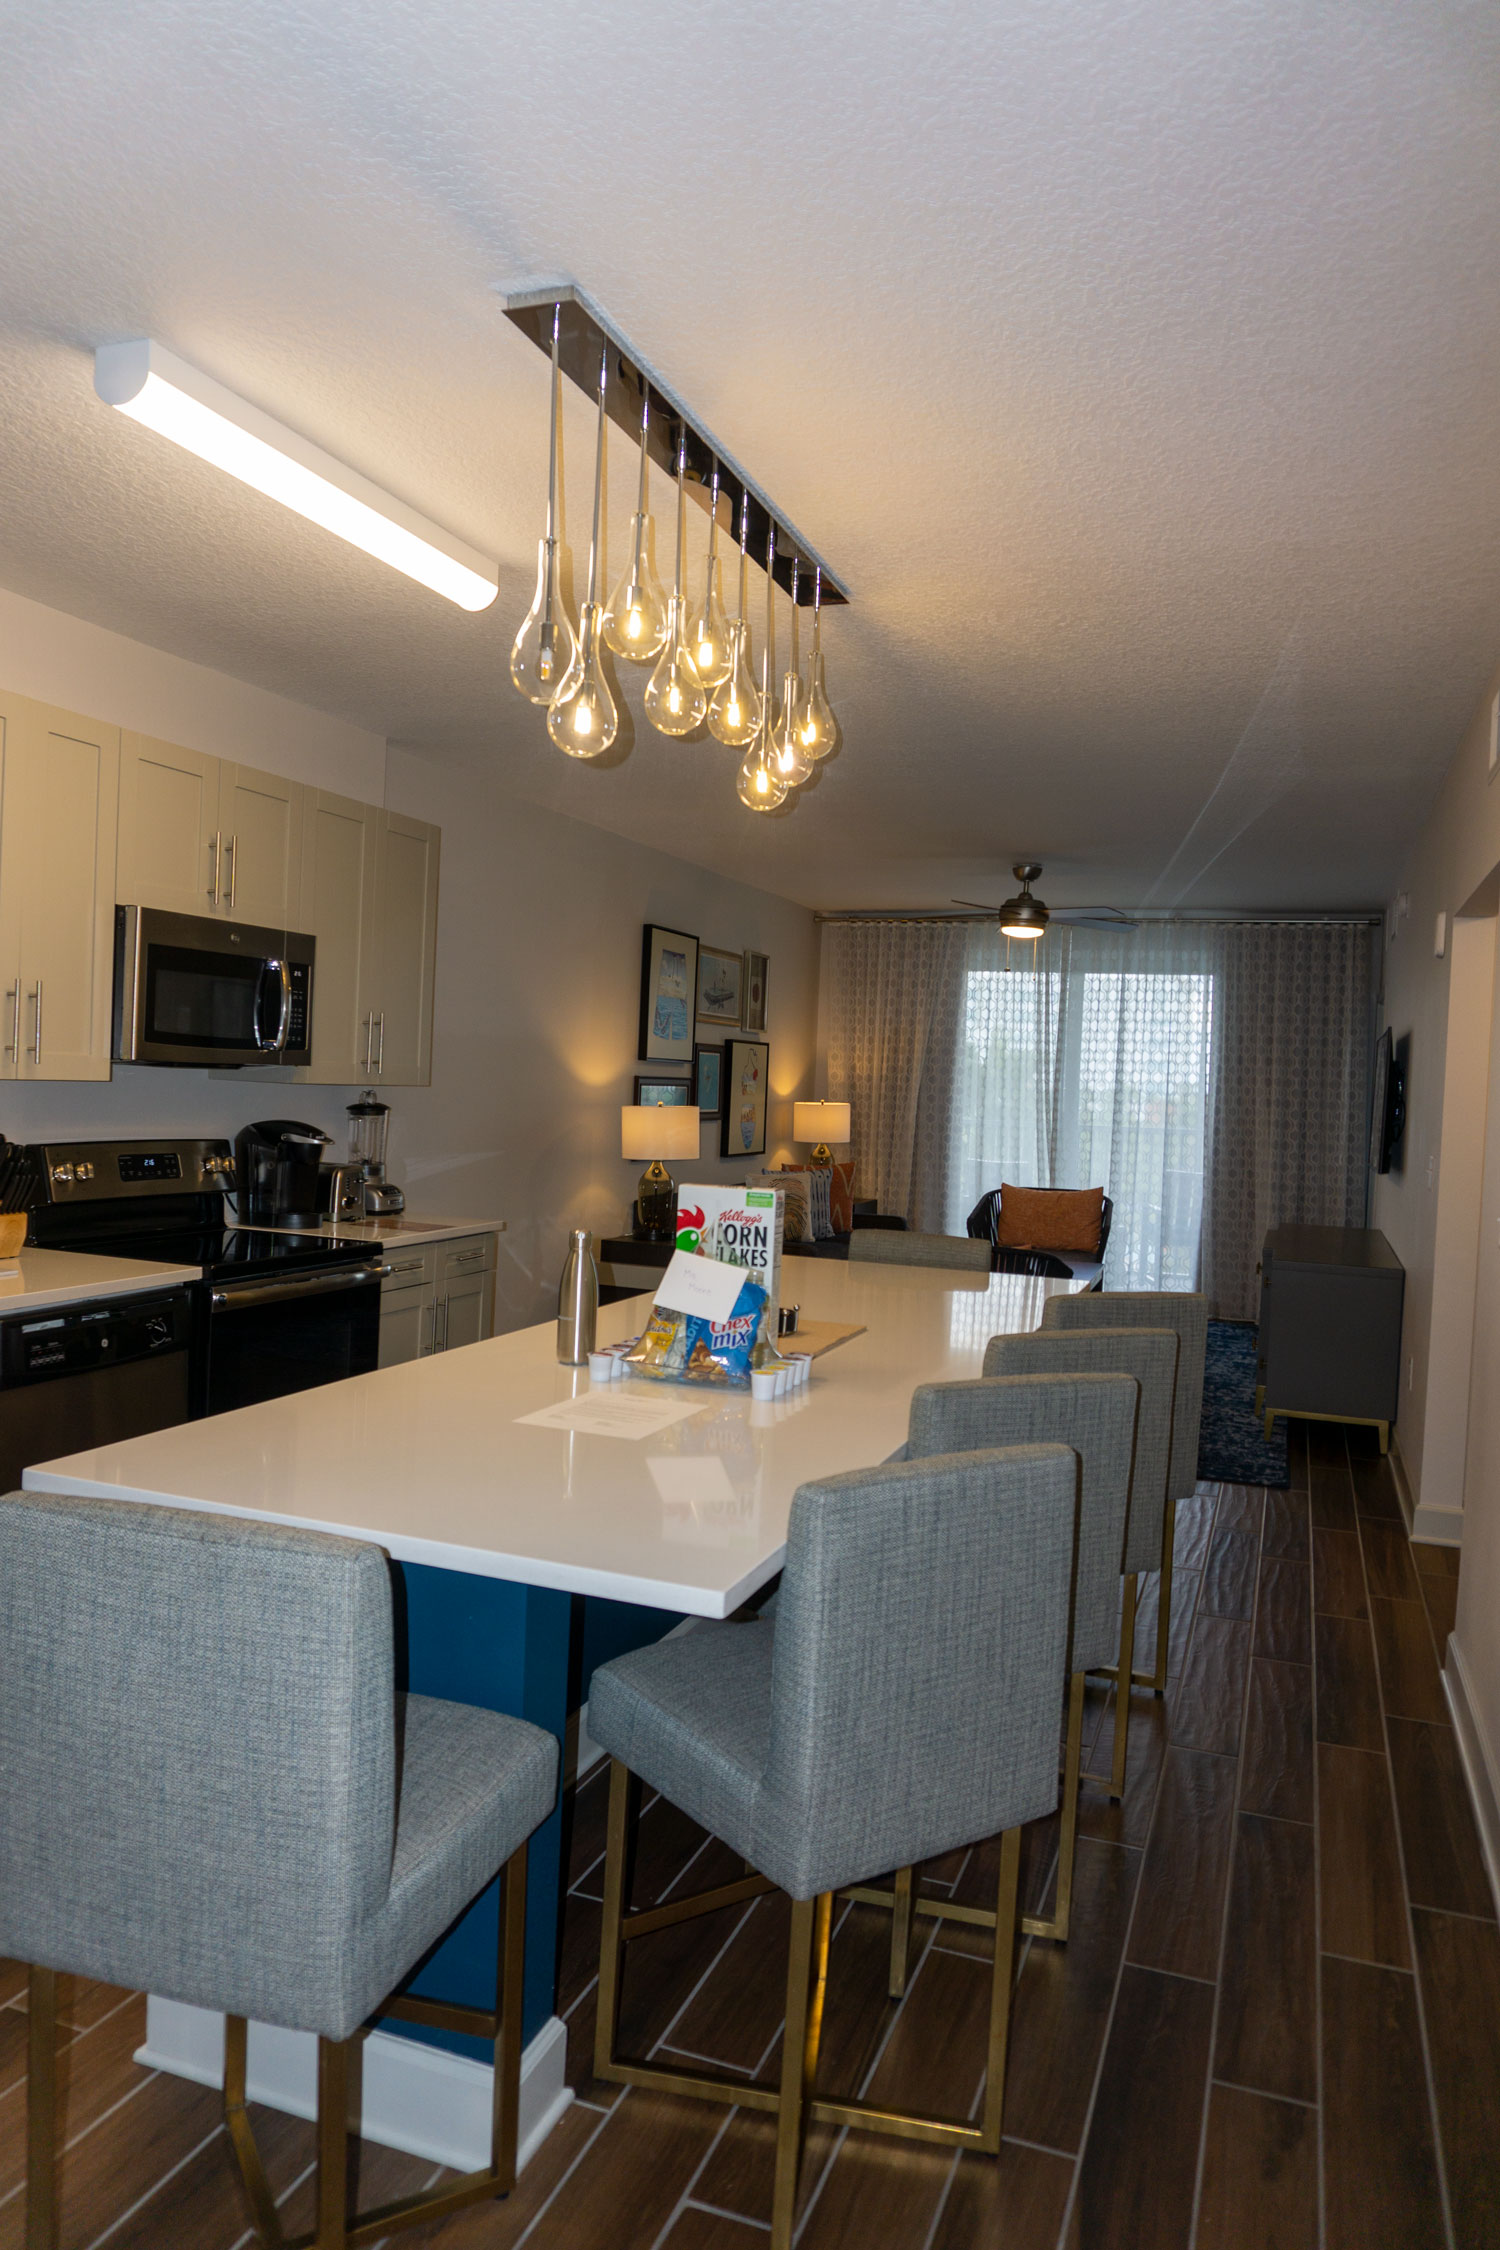 Two-bedroom timeshare rental in Orlando